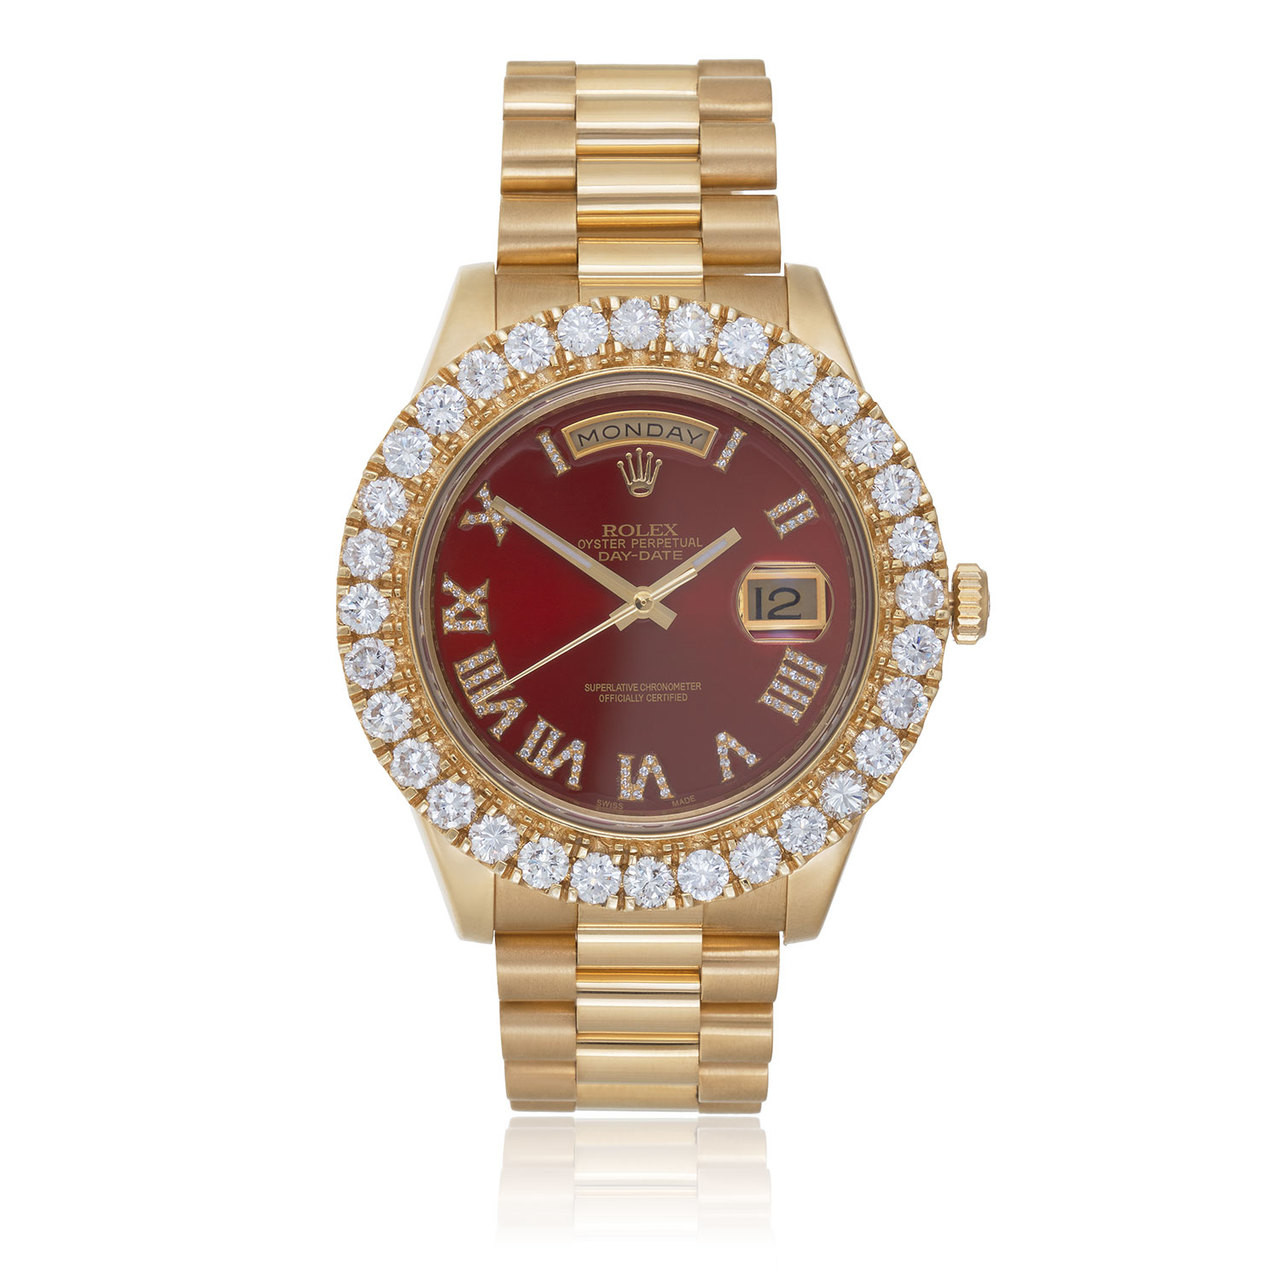 Rolex Day Date Ii President 6ct Diamond Bezel Automatic Watch